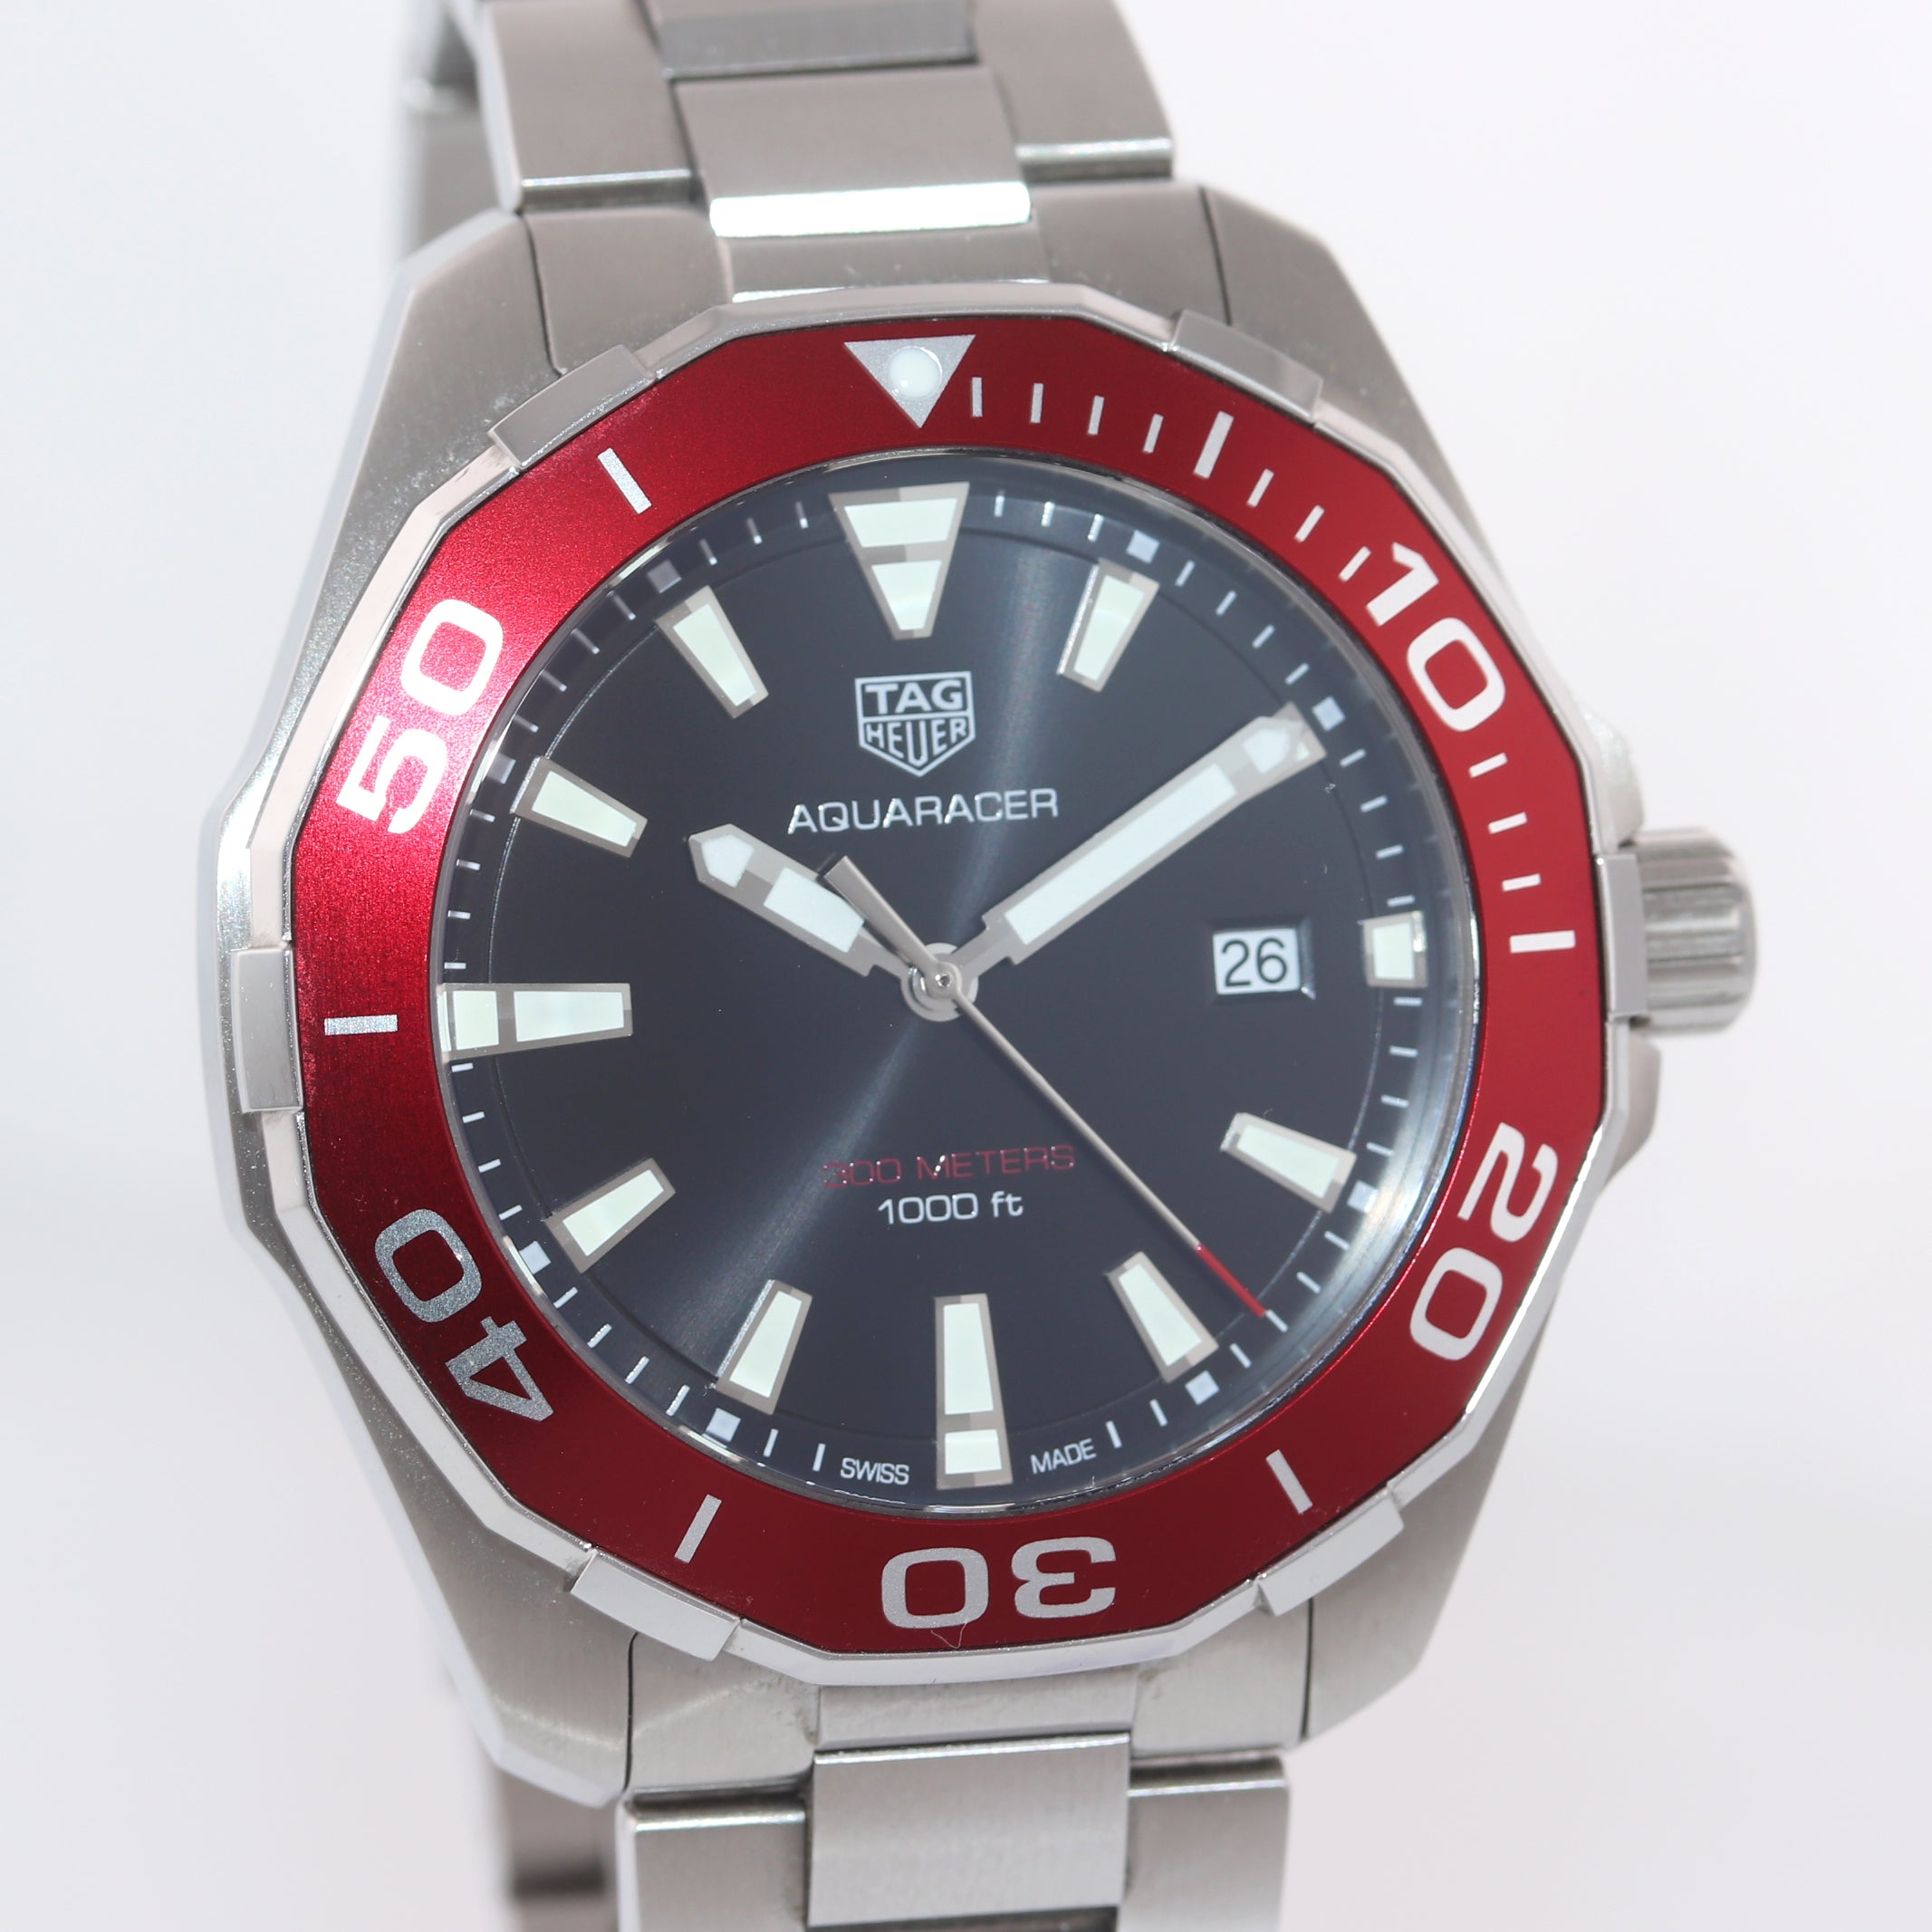 Tag Heuer Aquaracer Diver Black Dial Red Bezel Stainless Steel WAY101B.BA0746